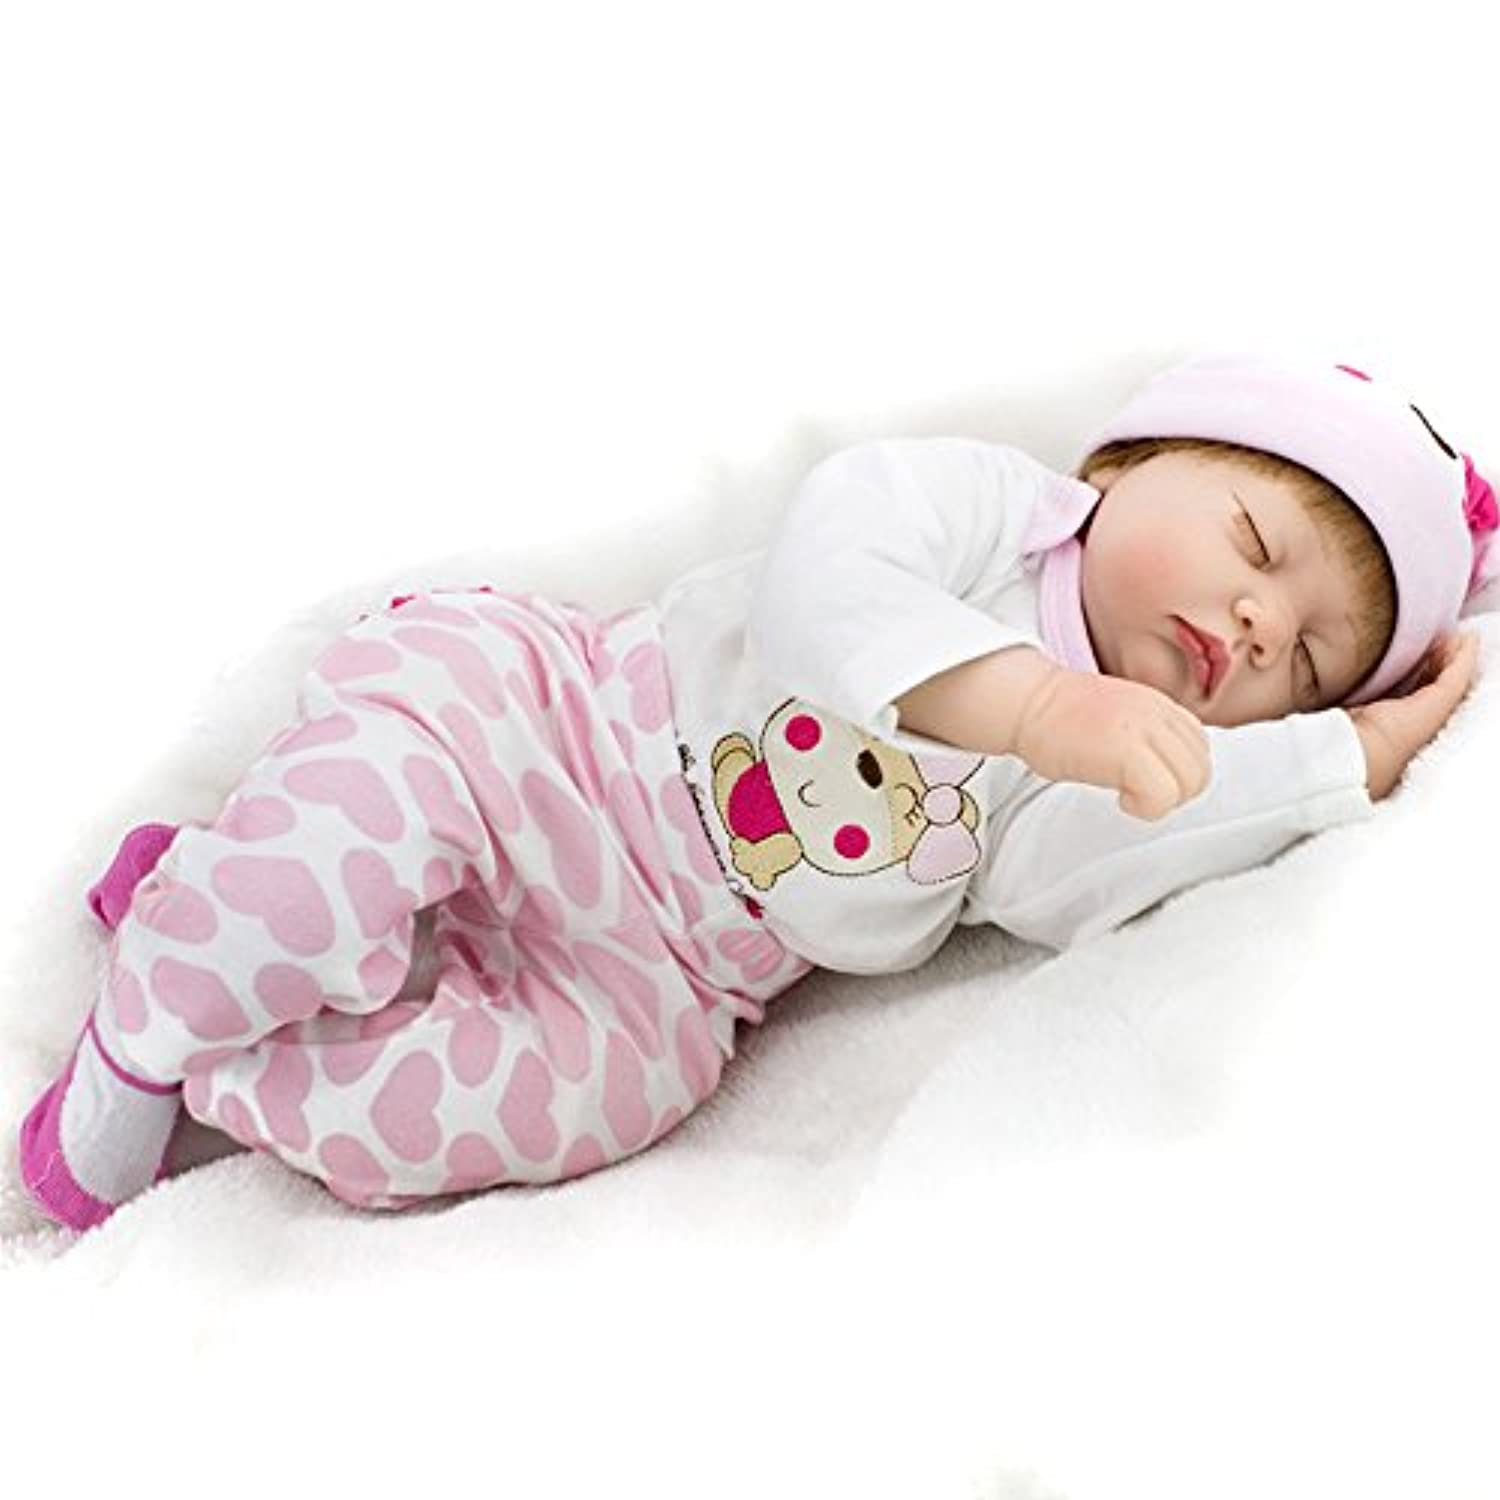 Look Real Rebornガールズベビーシリコン人形Lifelike Sleeping Toys for Girls Boysキッズ